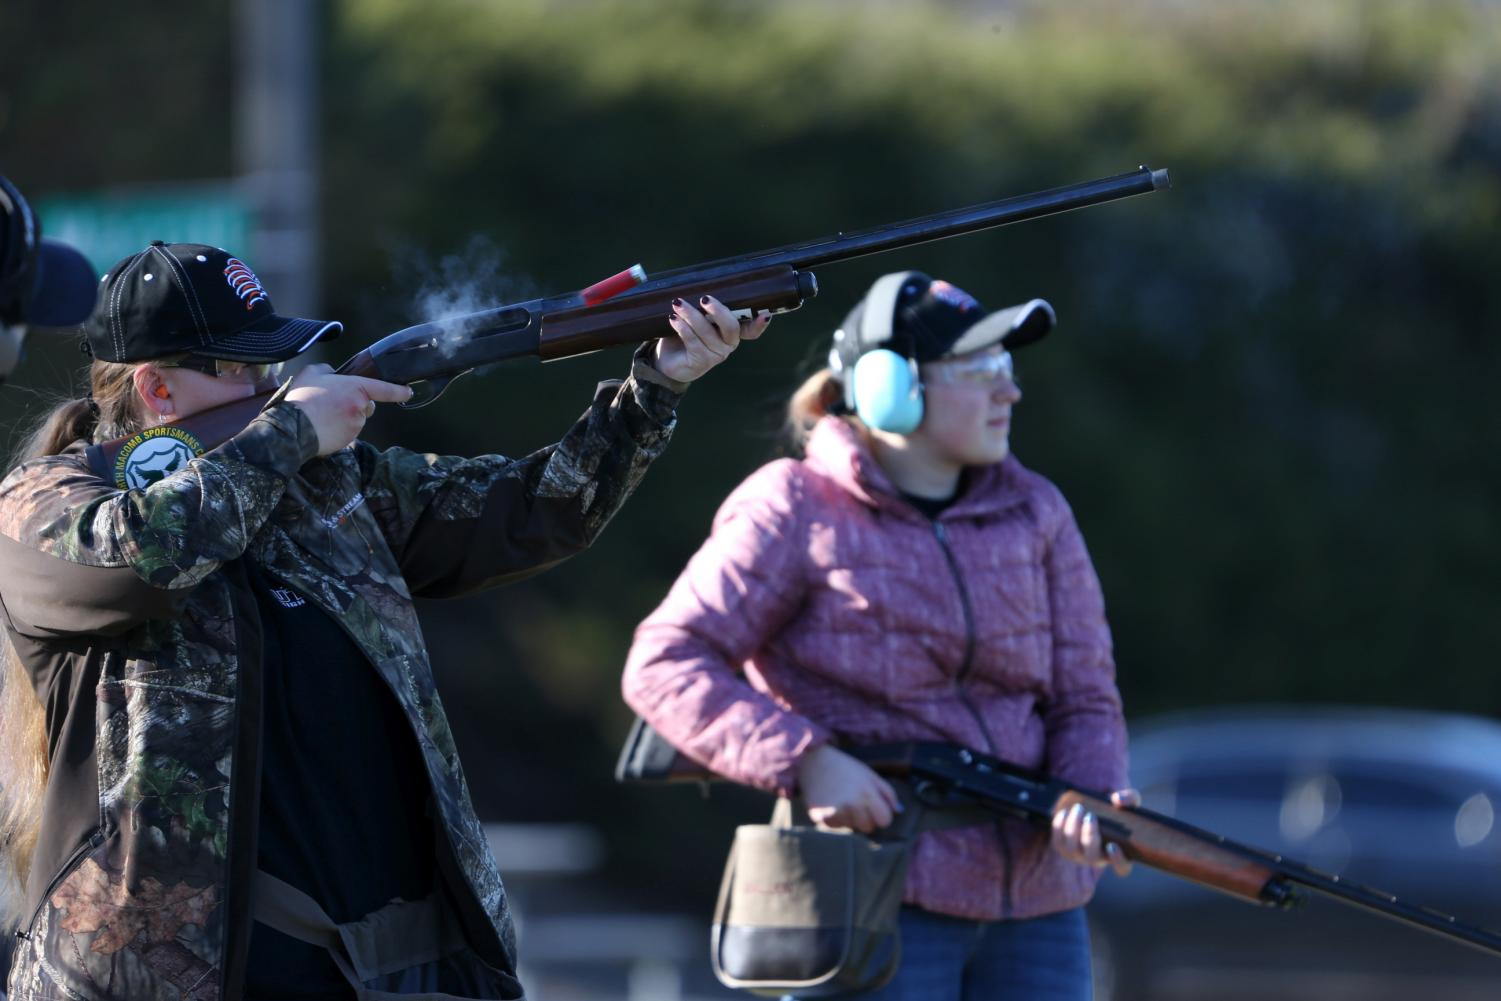 At the North Macomb Sportsmen's Club in Washington, sophomore Annie Grzeszczak takes down a clay target while sophomore Shelby Remeselnik waits for her next shot.